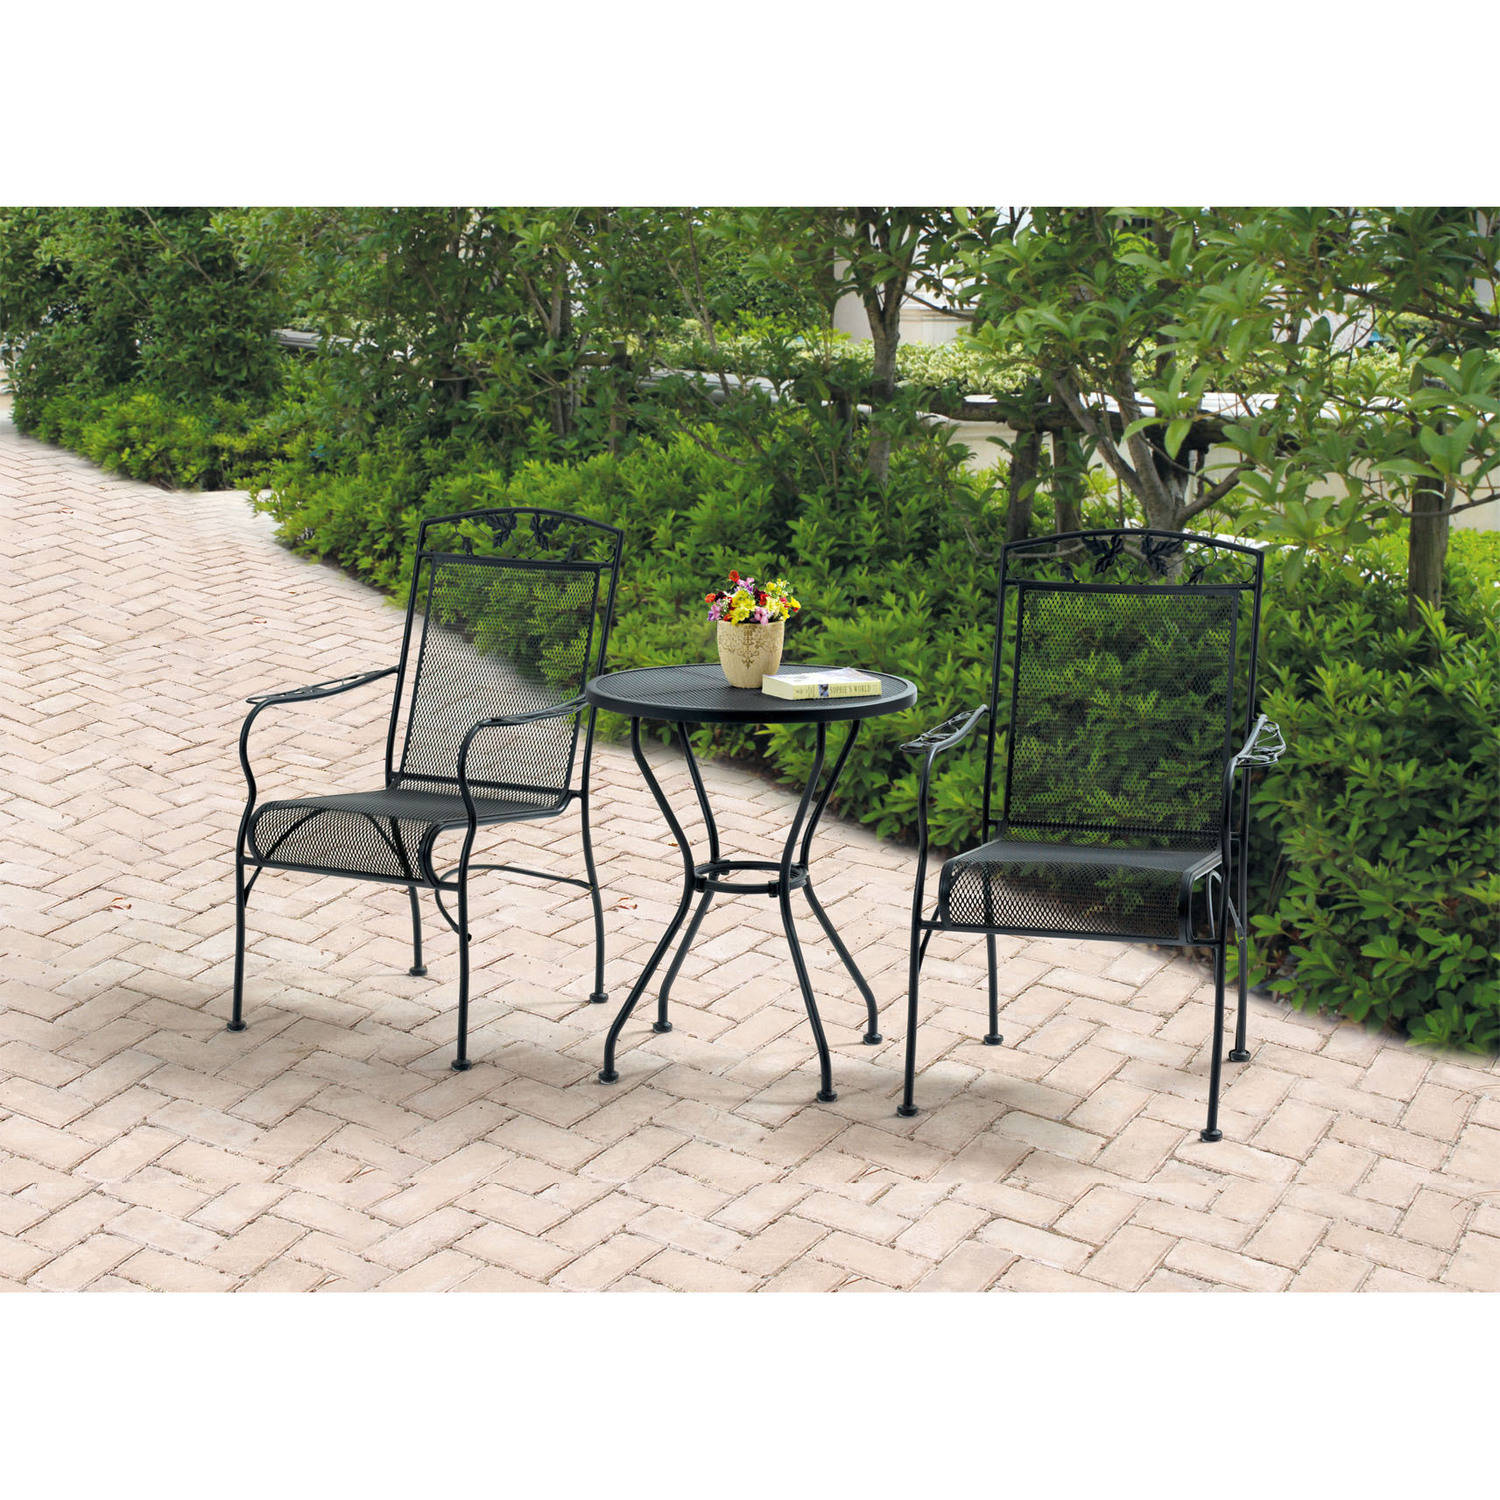 piece dining s set larger outdoor terrace patio canada view lowe z corliving sets env park tpp